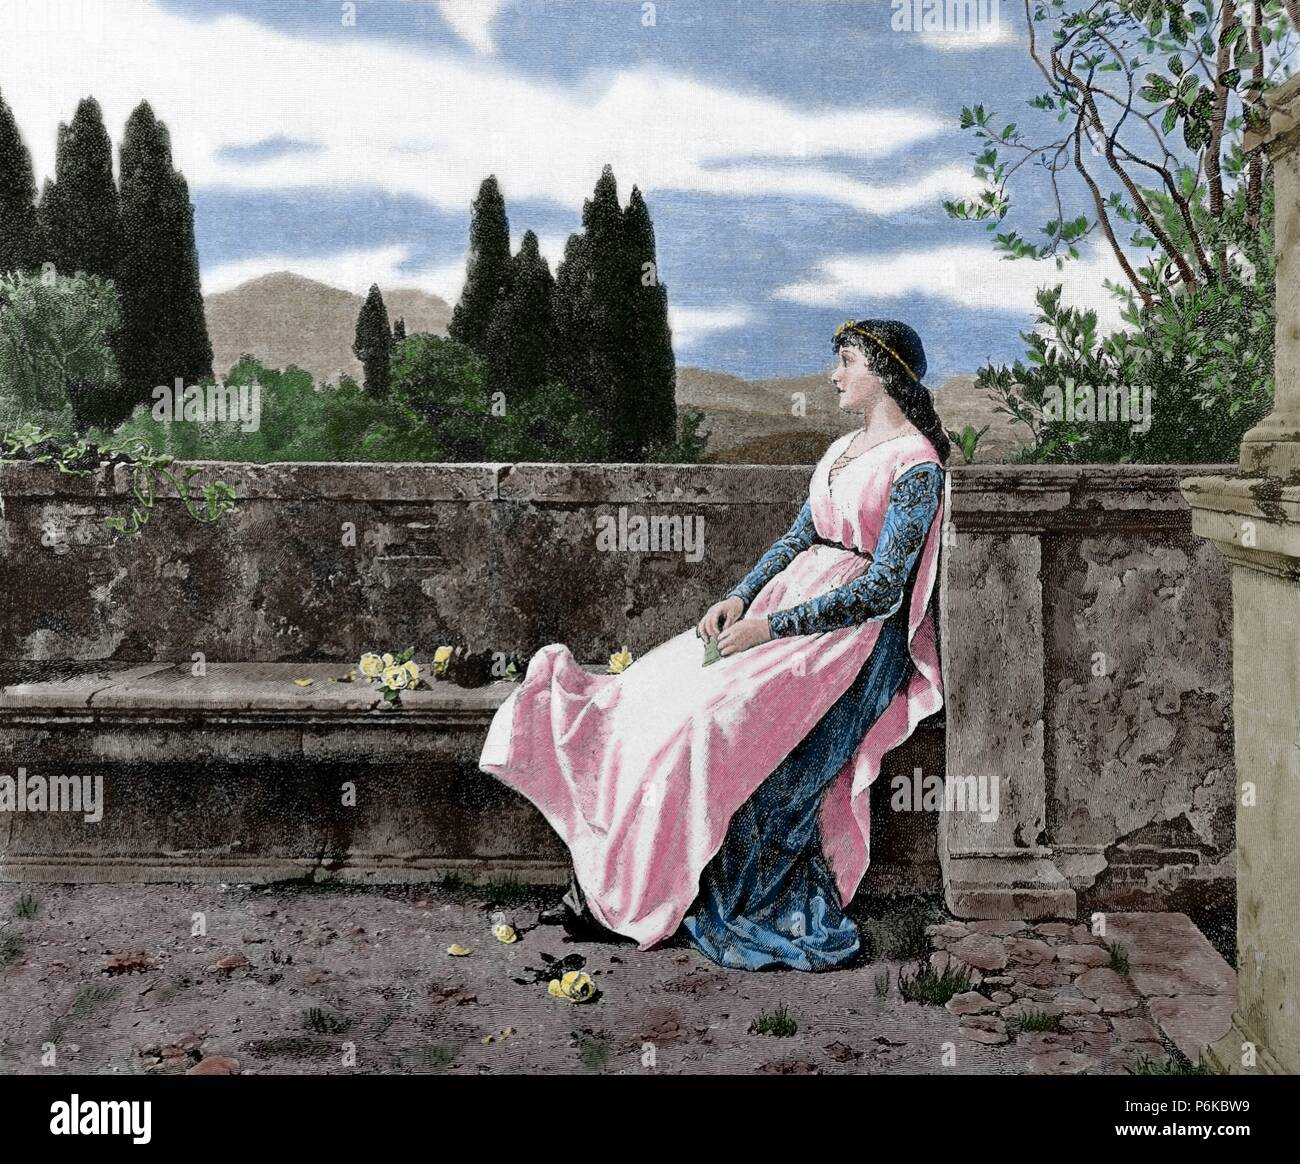 Matilda of Tuscany or Matilda of Canossa (1046-1115). Italian noblewoman. Supporter of Pope Gregory VII during the Investiture Controversy. Engraving by R. Brend'Amour. La Ilustracion, 1887. Colored. - Stock Image